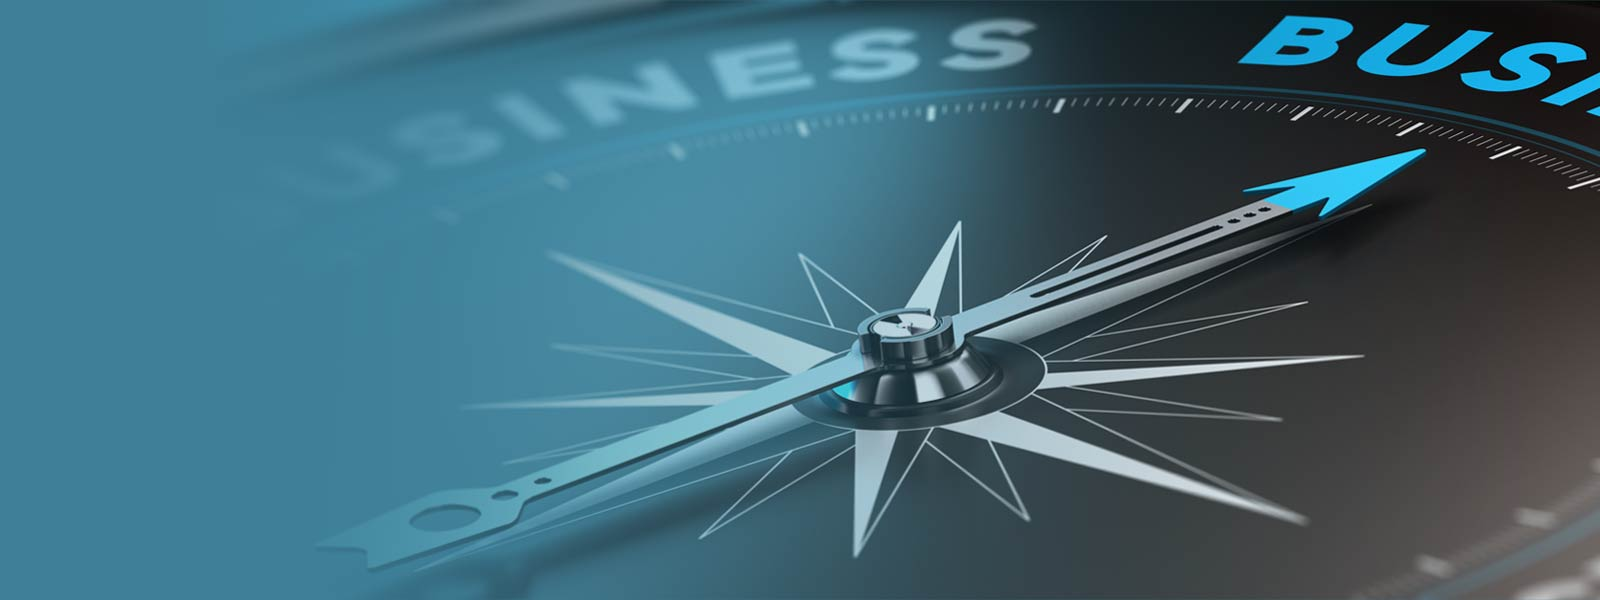 business compass background image